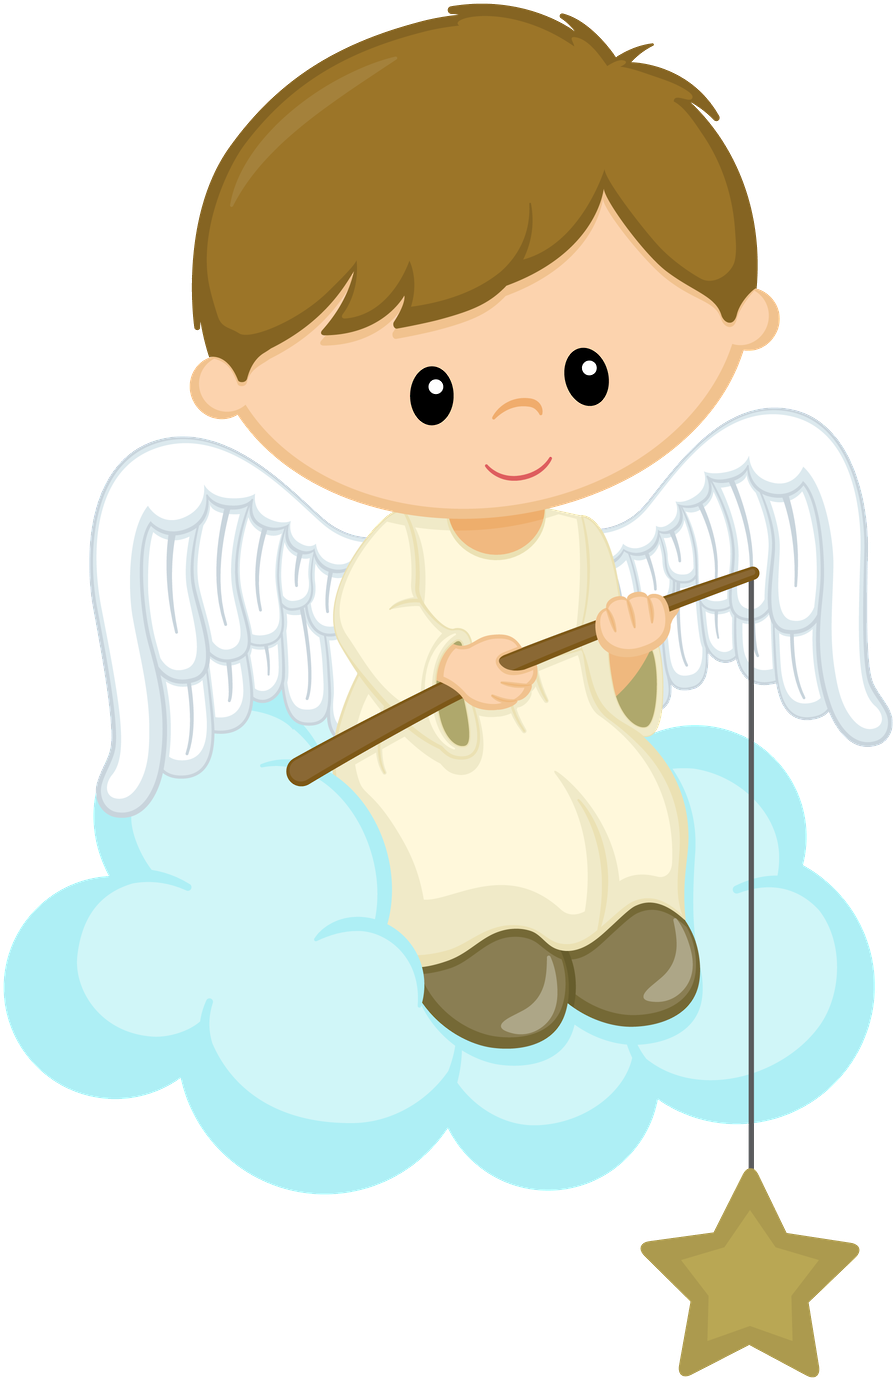 Rosary clipart child. Download christening boy angelitos